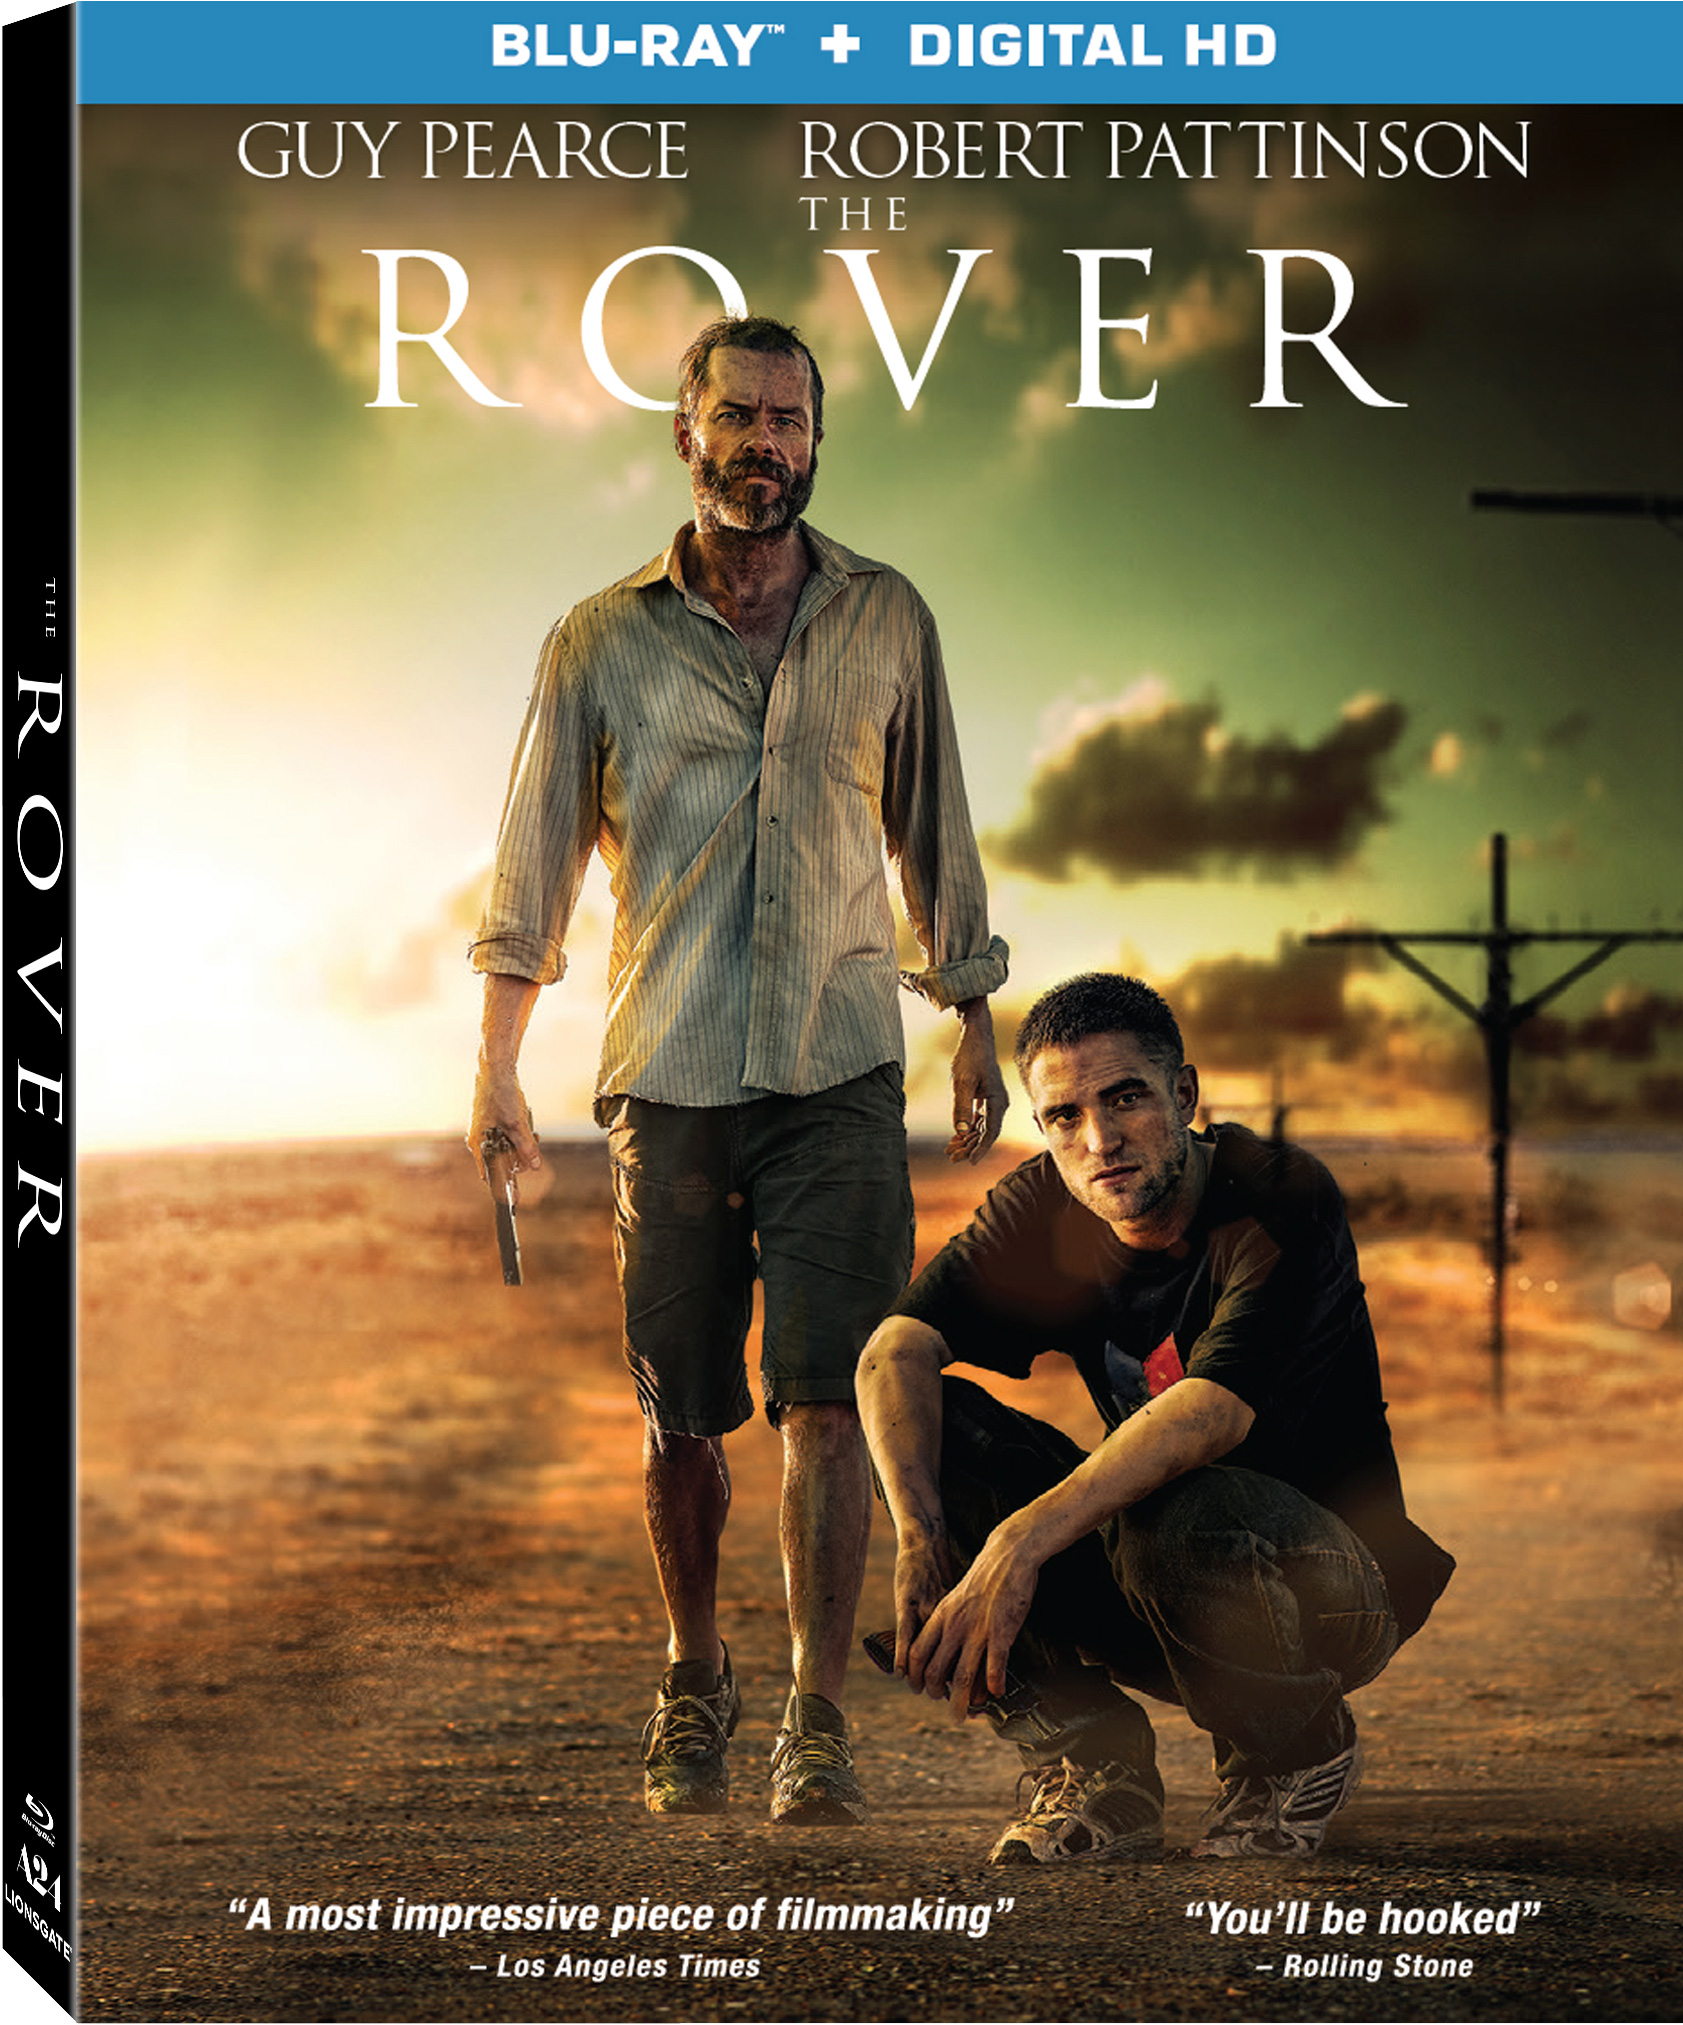 The Rover Starring Robert Pattinson And Guy Pierce Blu-ray